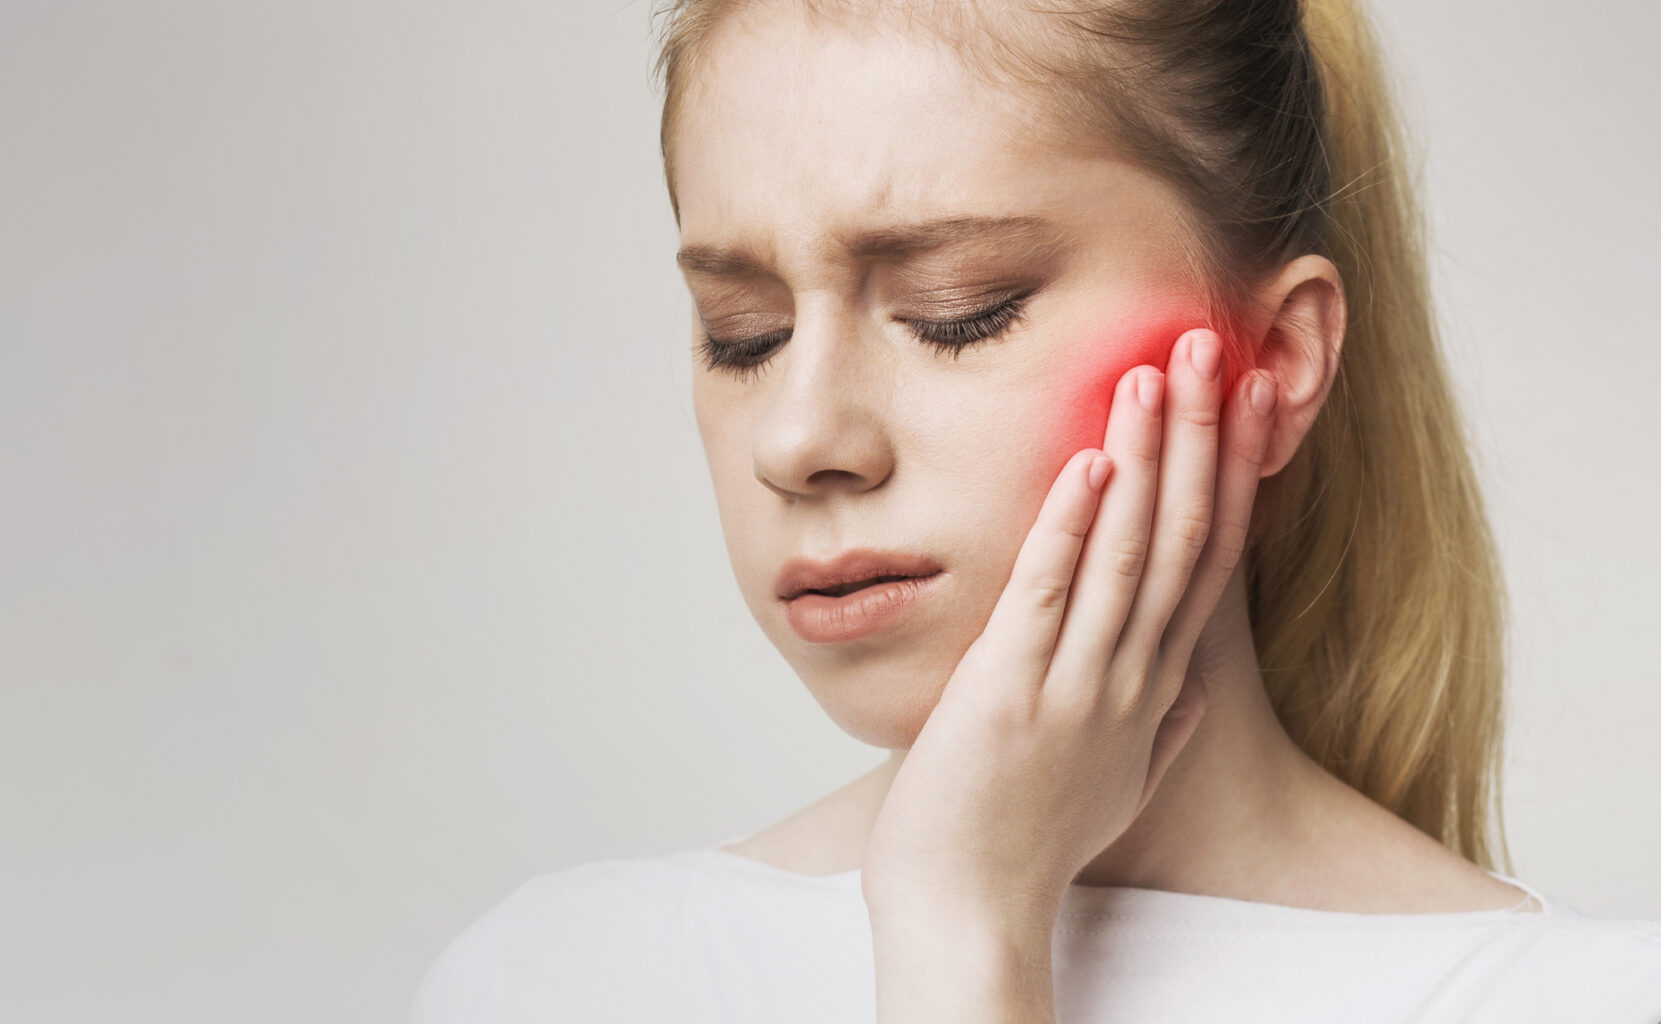 Is your jaw pain related to teeth grinding?